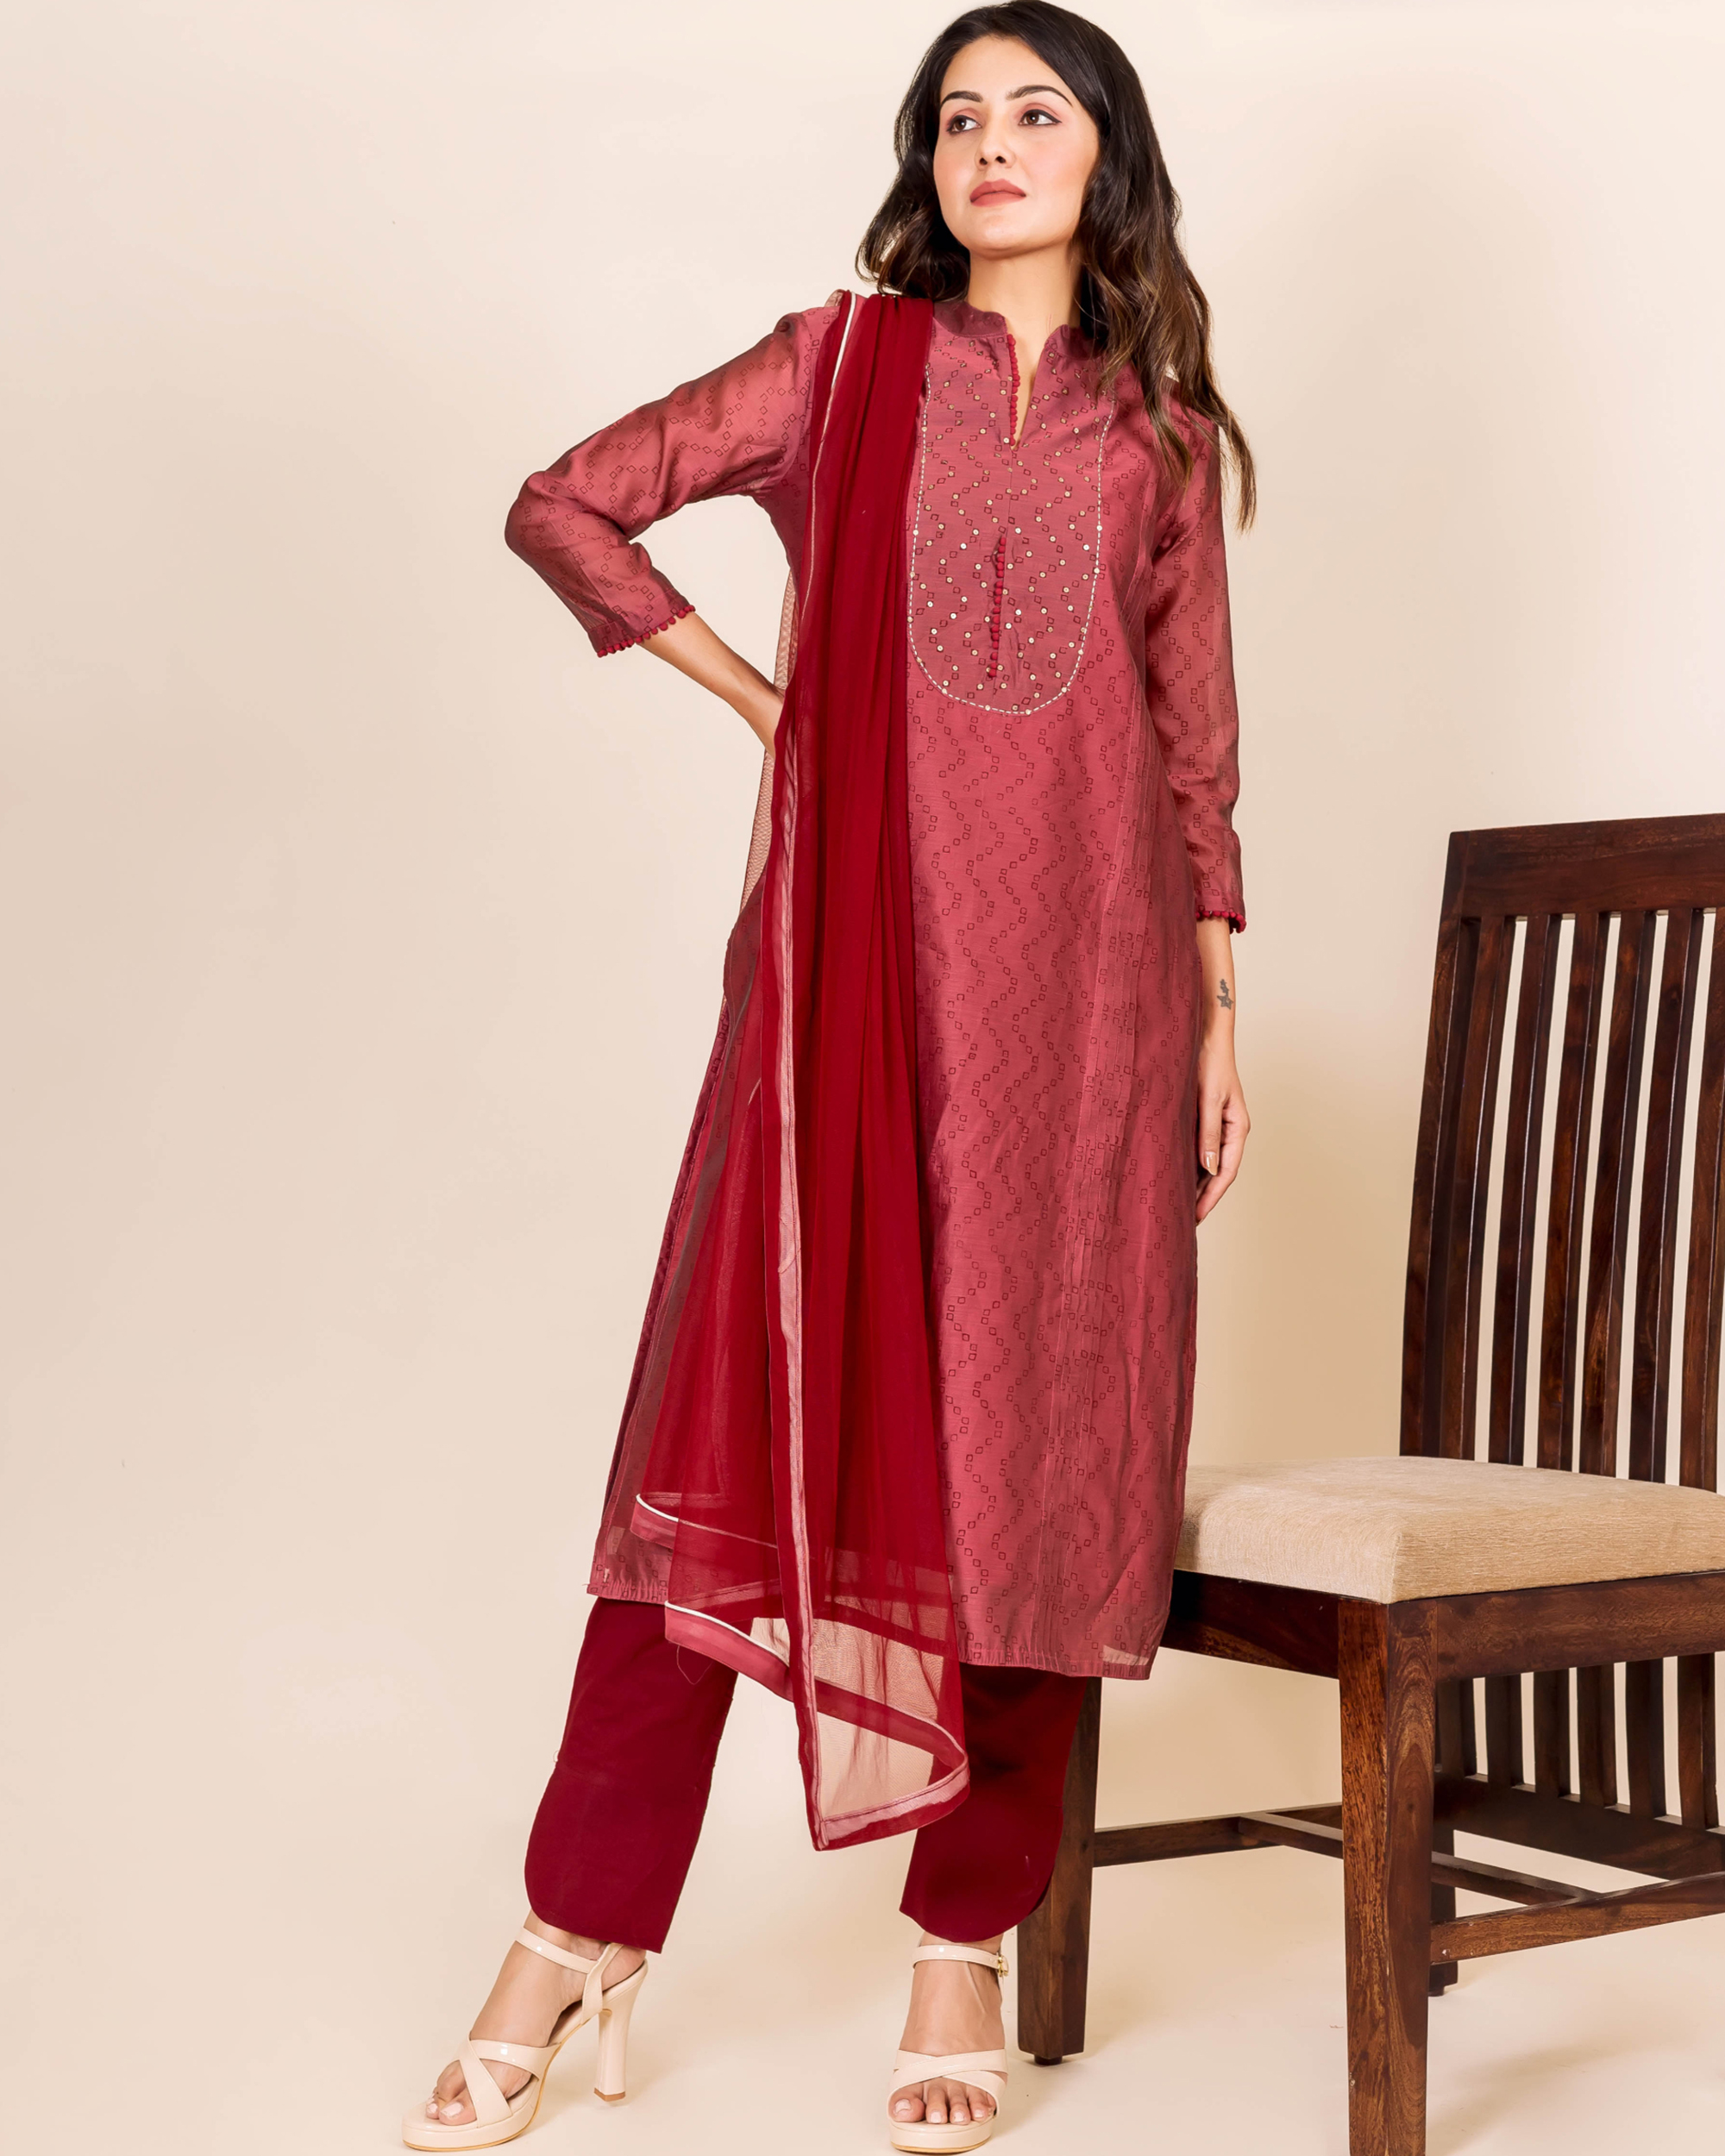 Burgundy bandhej printed and embroidered suit set - set of three